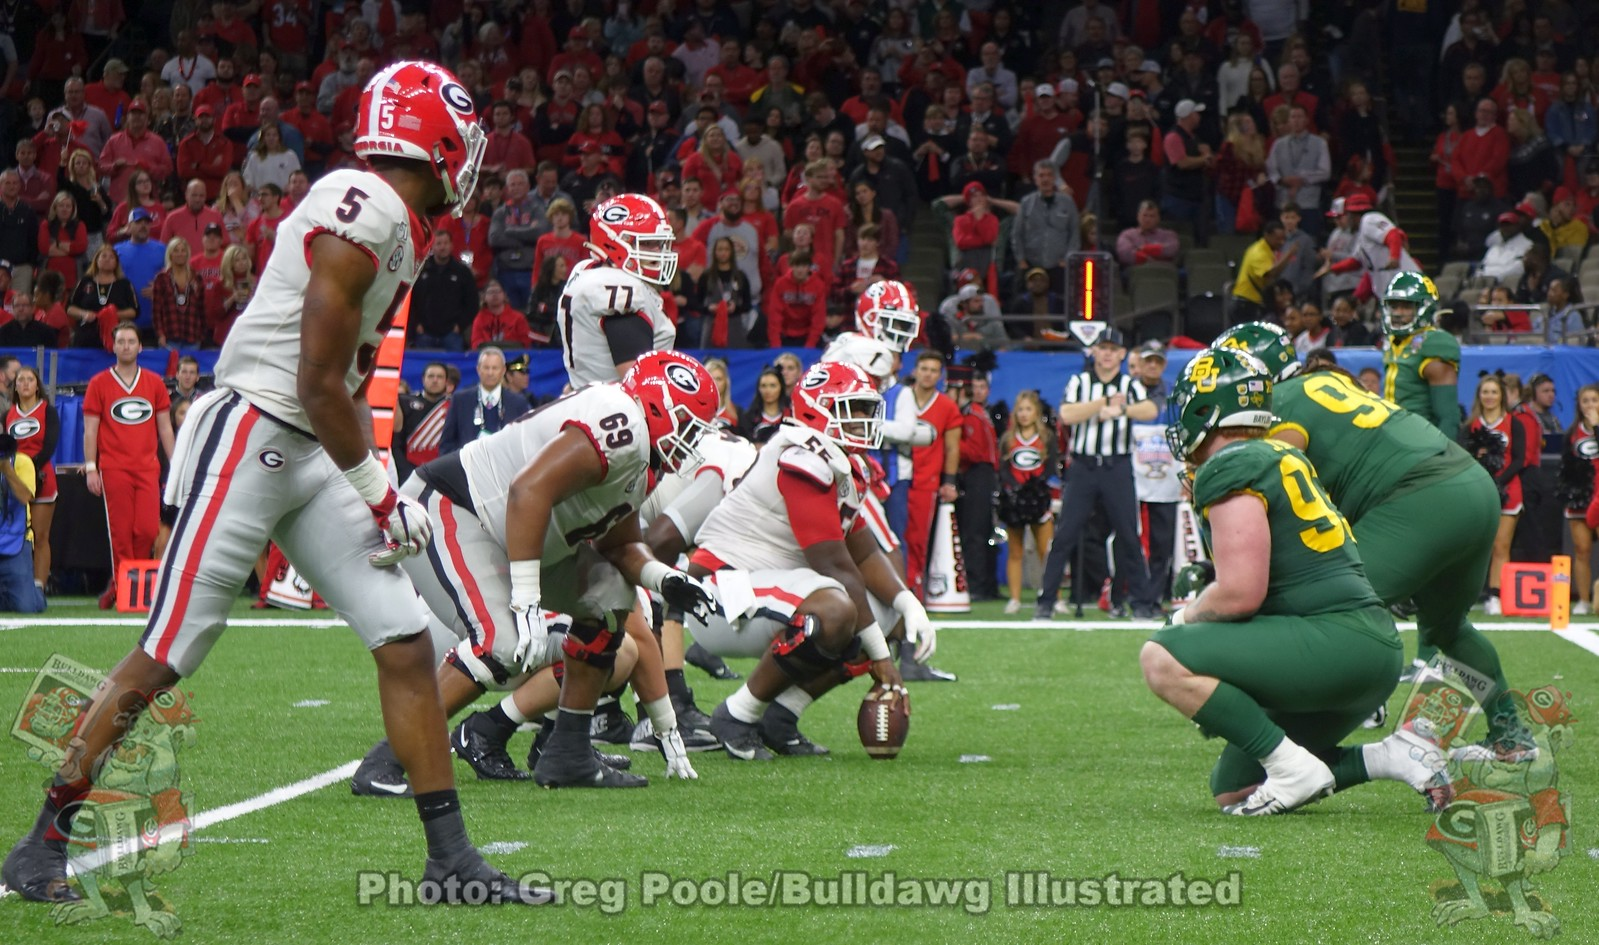 The Georgia offensive line sizes up the Baylor d-line near the end zone | Sugar Bowl Game | New Orleans, LA | Wednesday, January 01, 2020